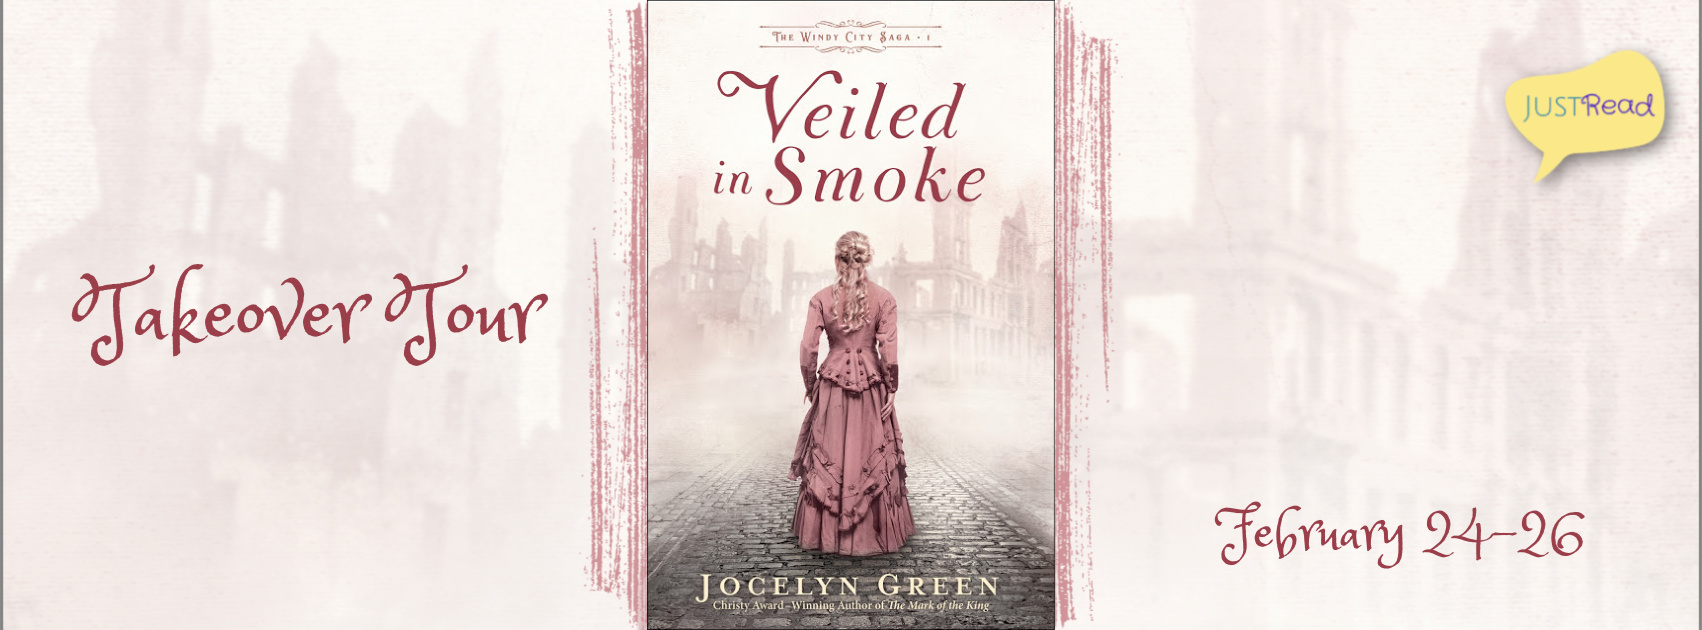 Welcome to the Veiled in Smoke Takeover Tour & Giveaway!